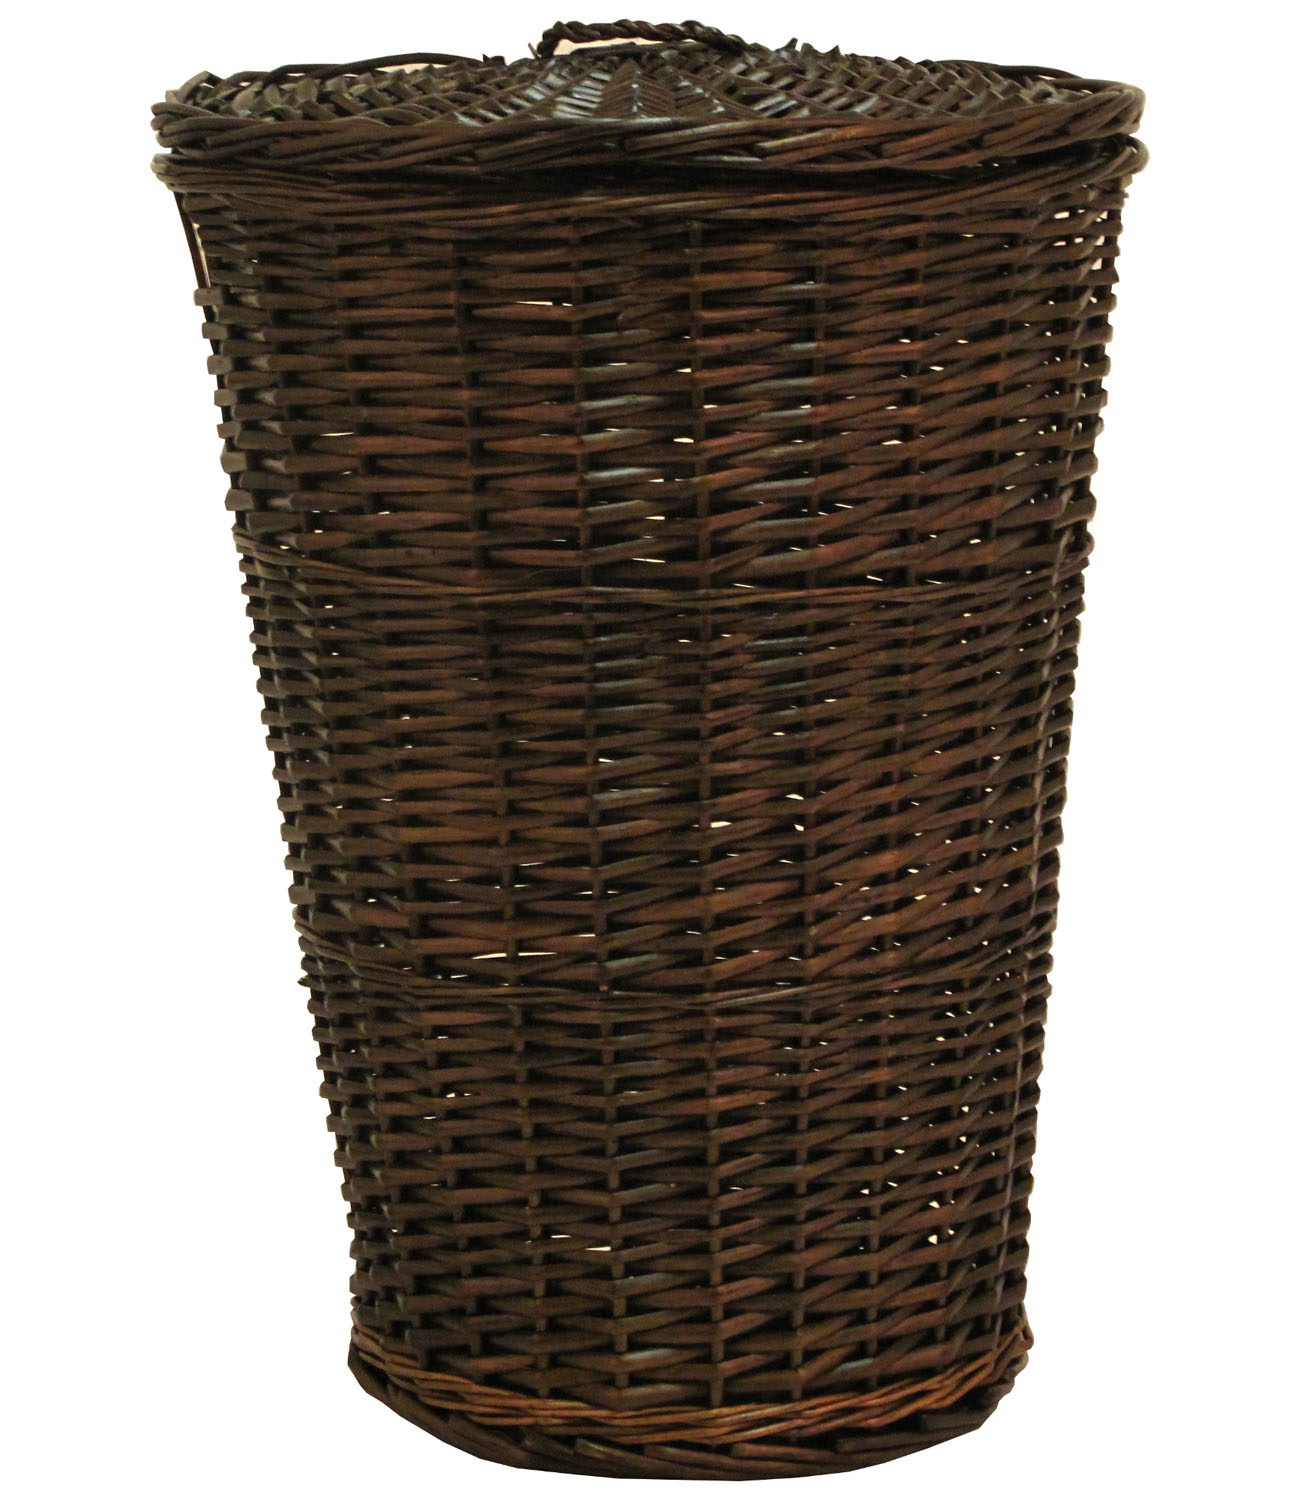 Redmon Home Round Willow Hamper 59f98c222a00e45a7237ce96